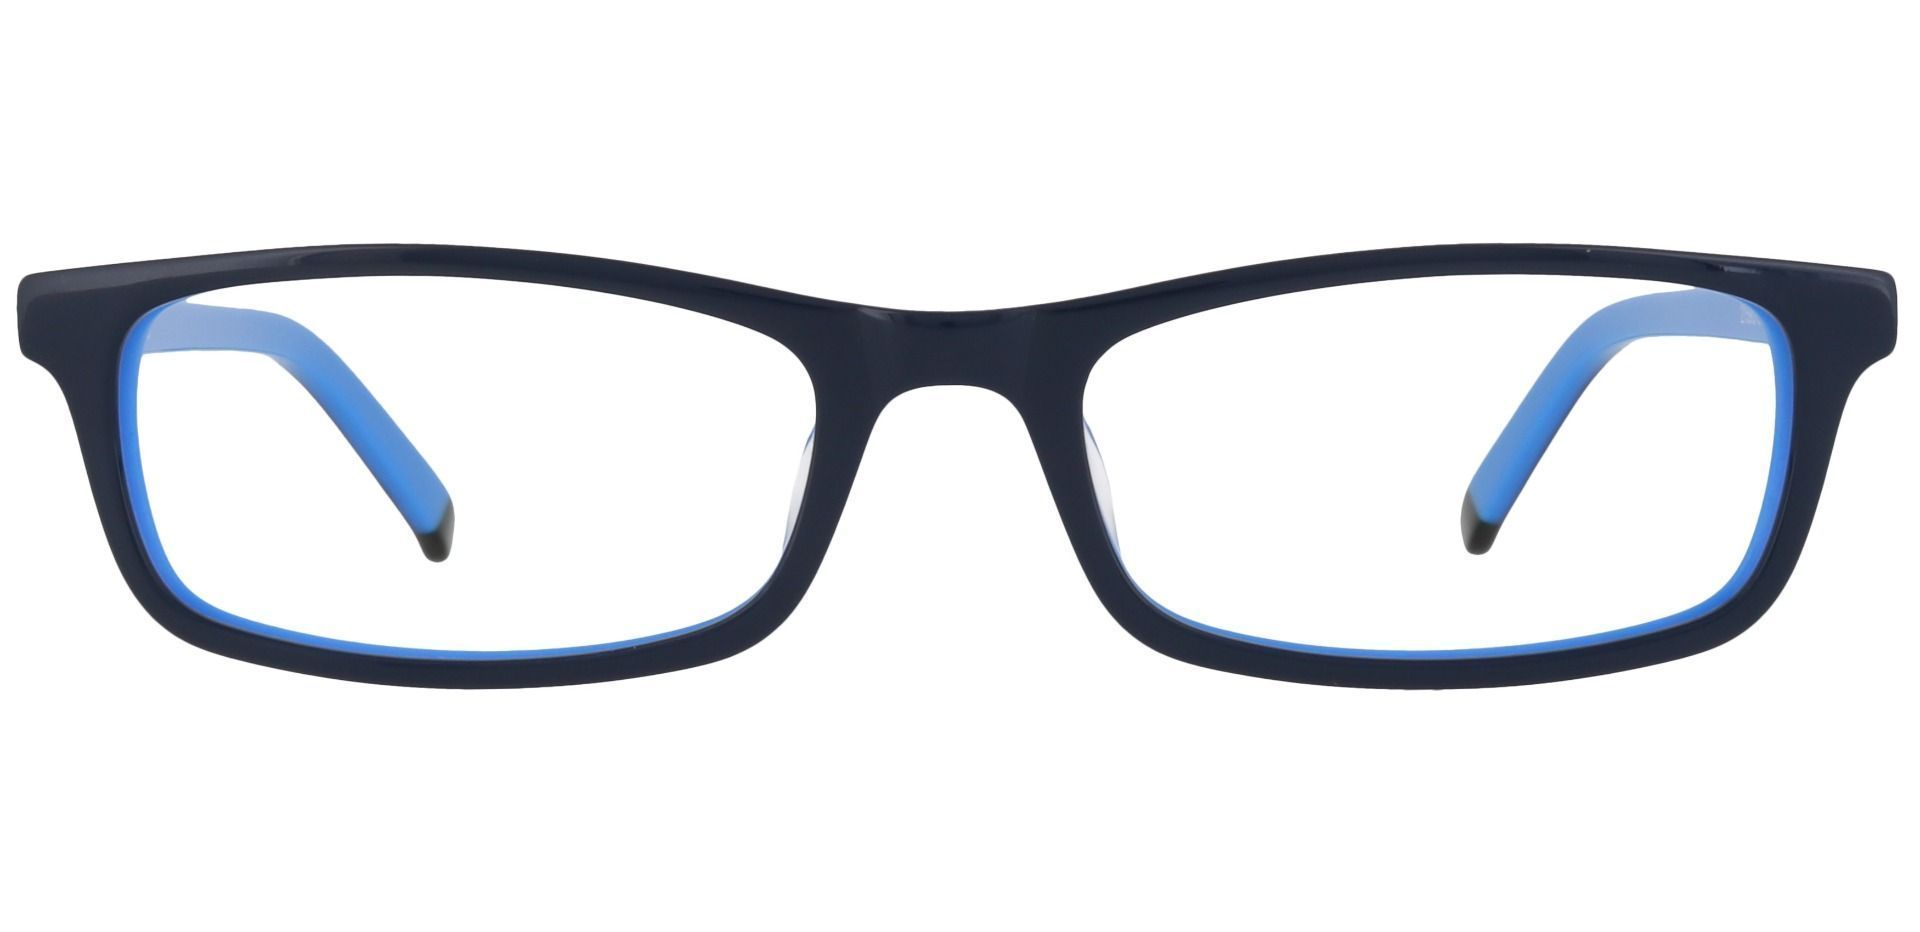 Palisades Rectangle Single Vision Glasses - Blue